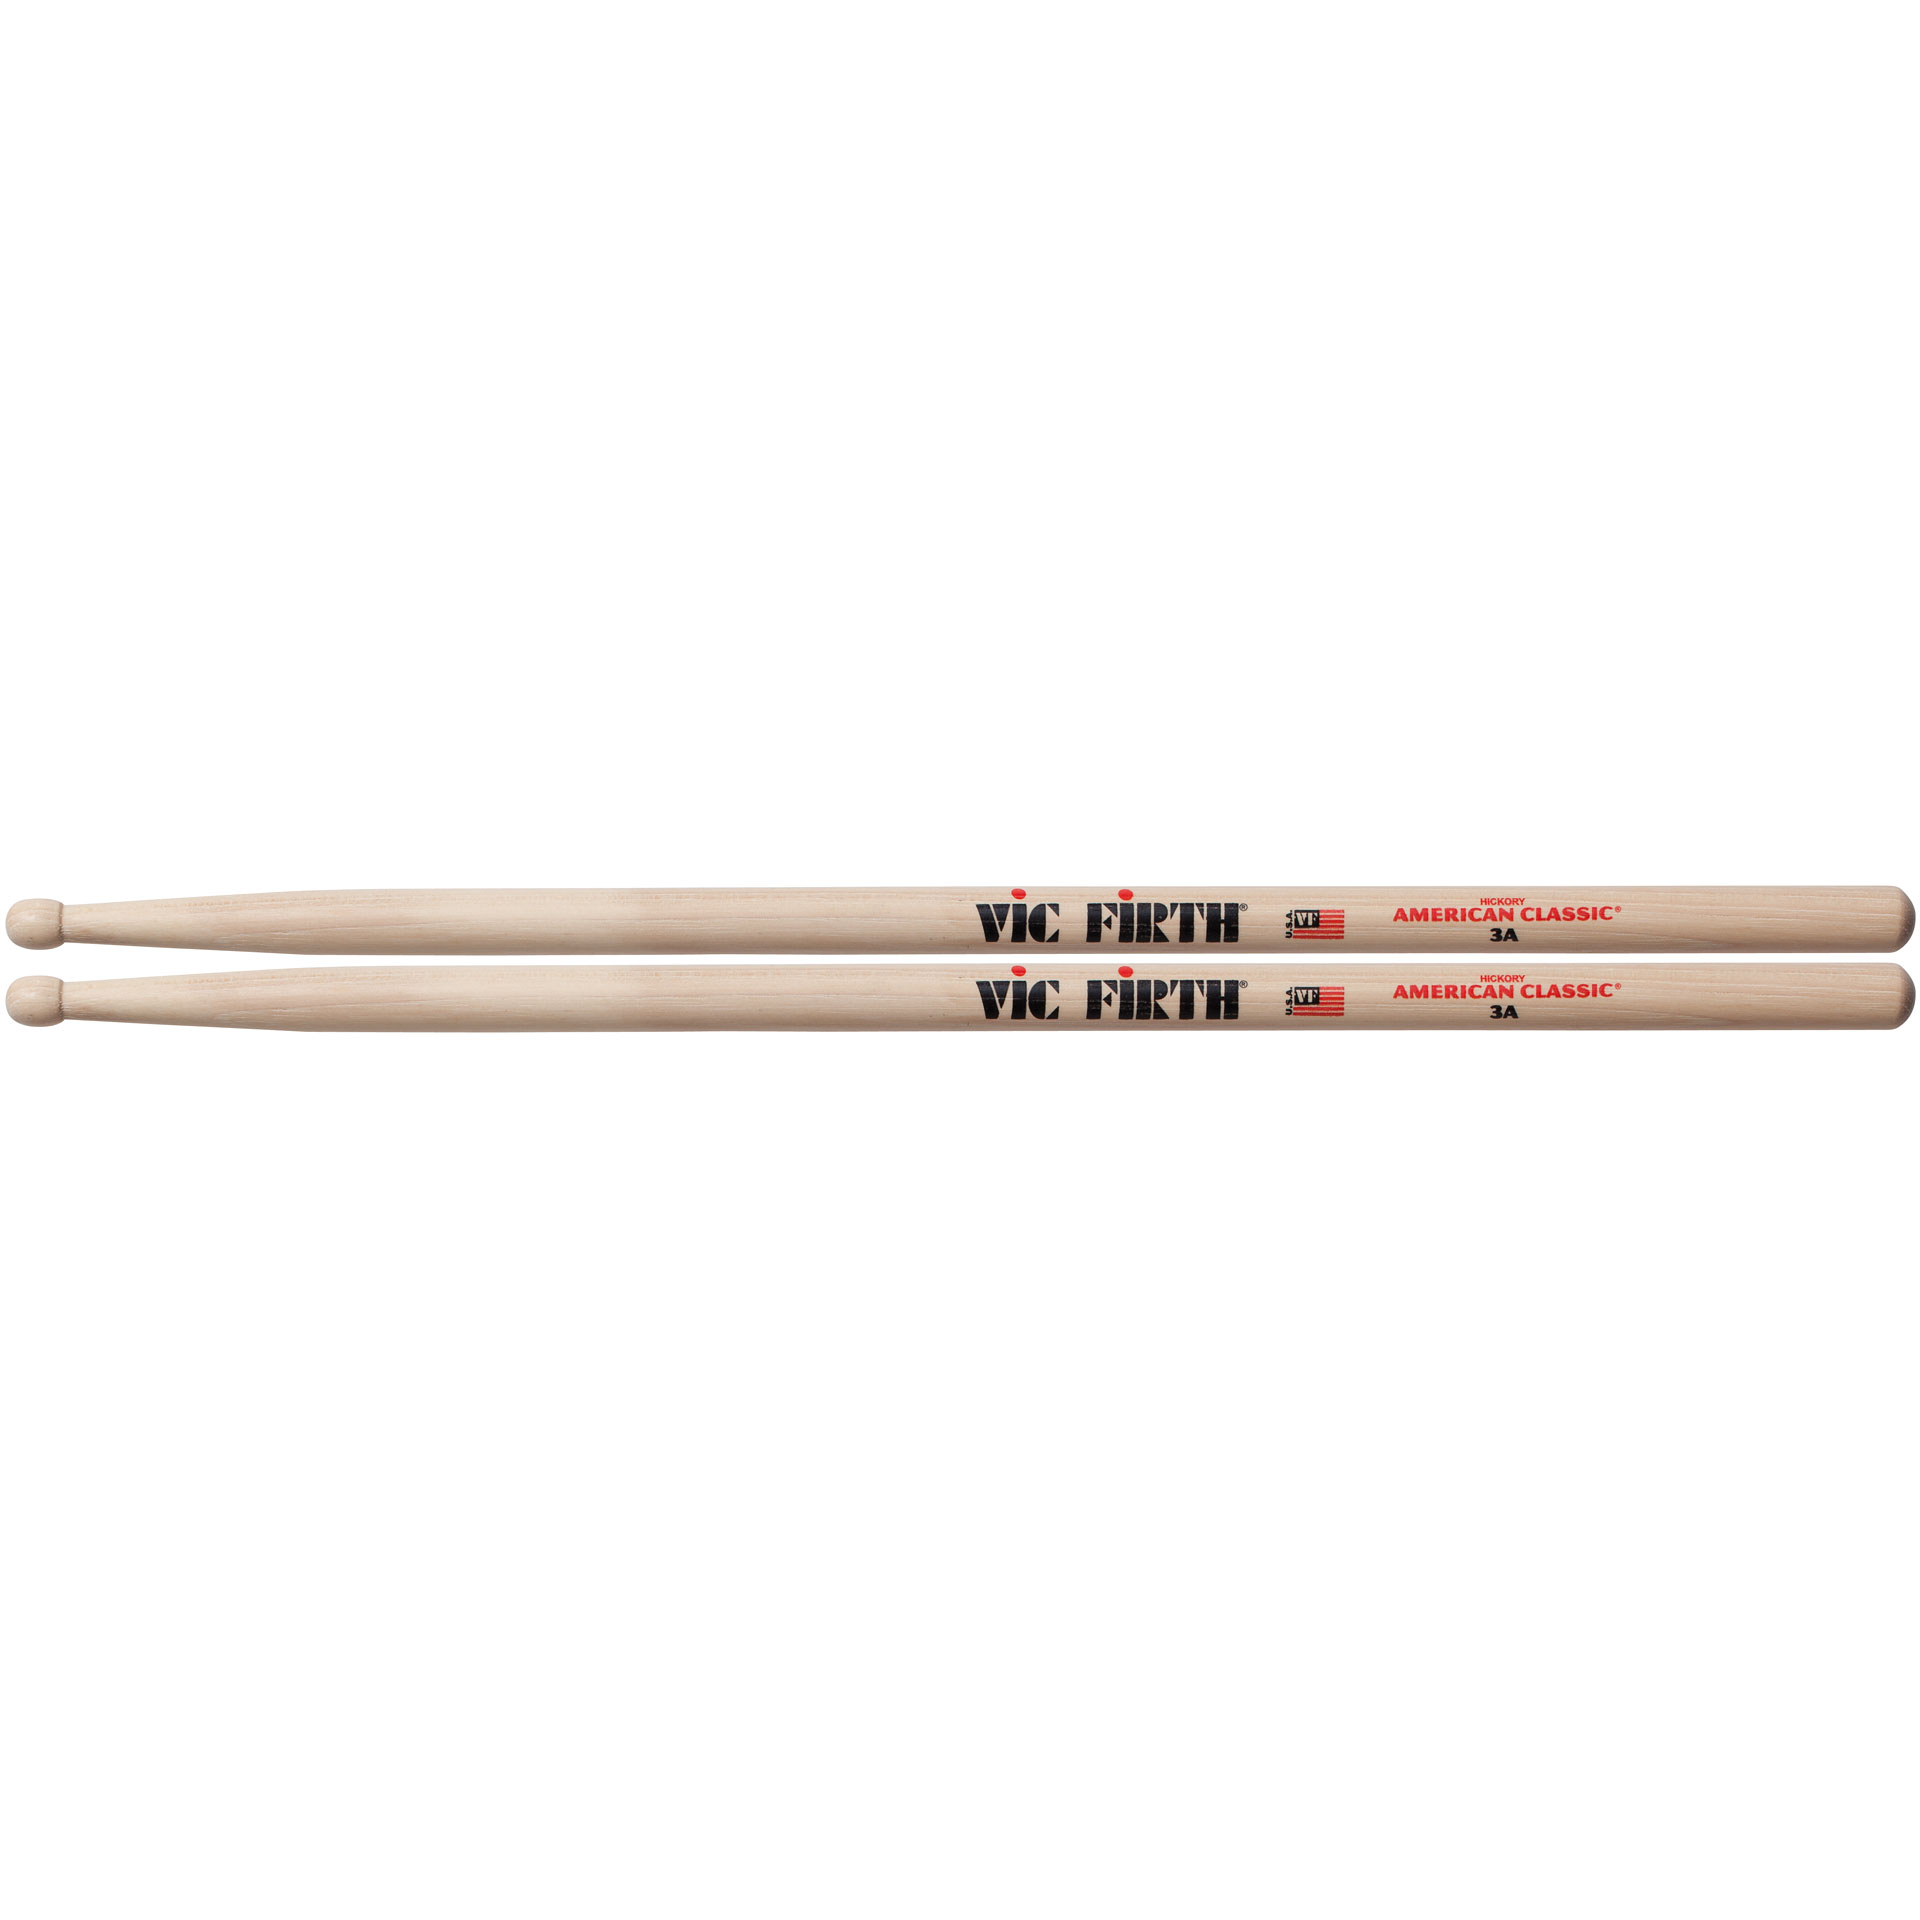 Vic firth american classic 3a drumsticks for American classic 3